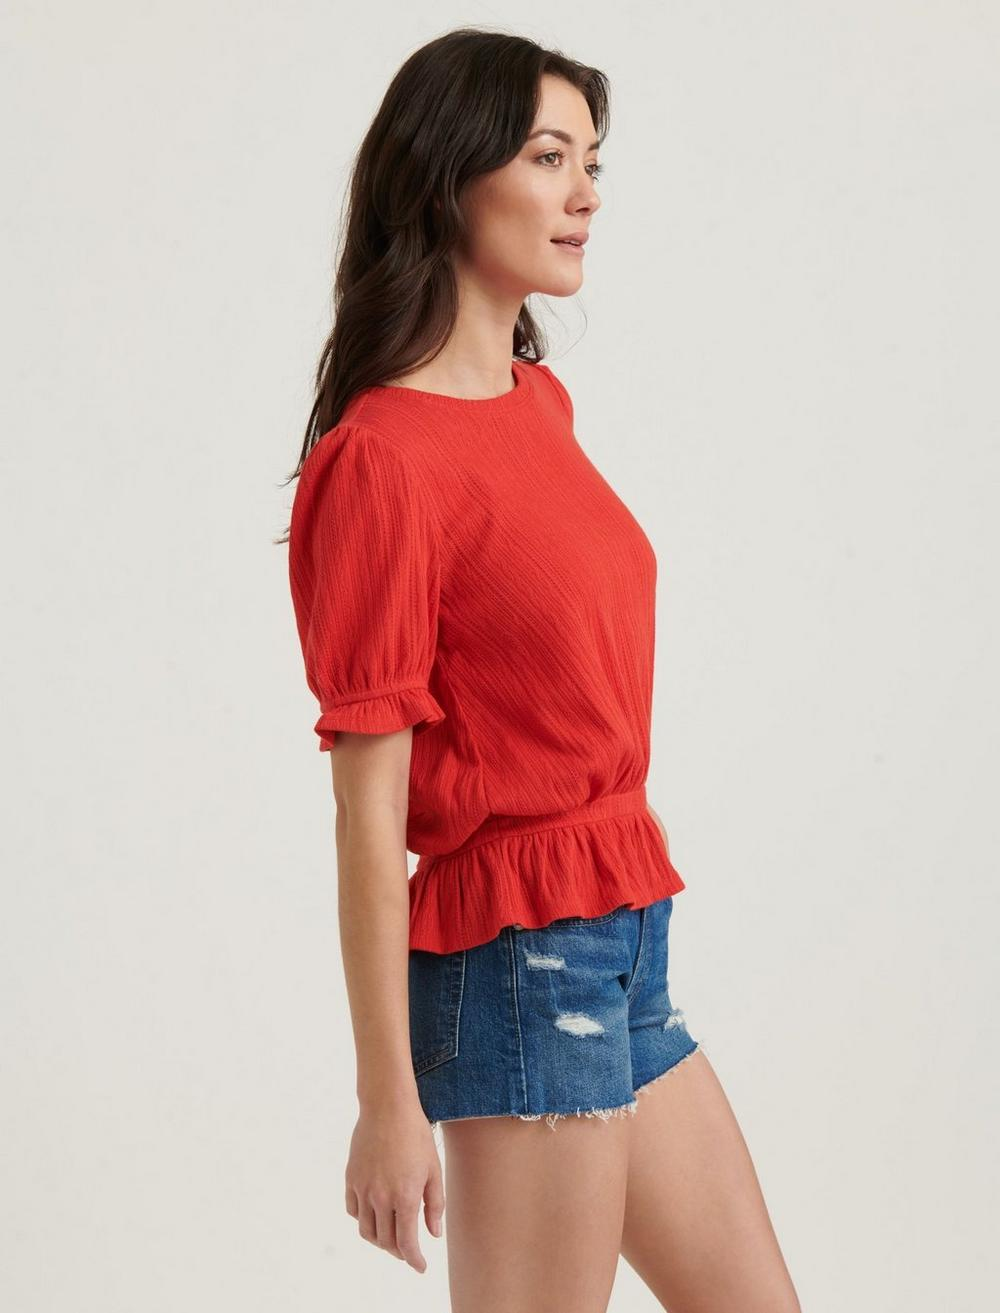 POINTELLE KNIT BANDED TOP, image 3